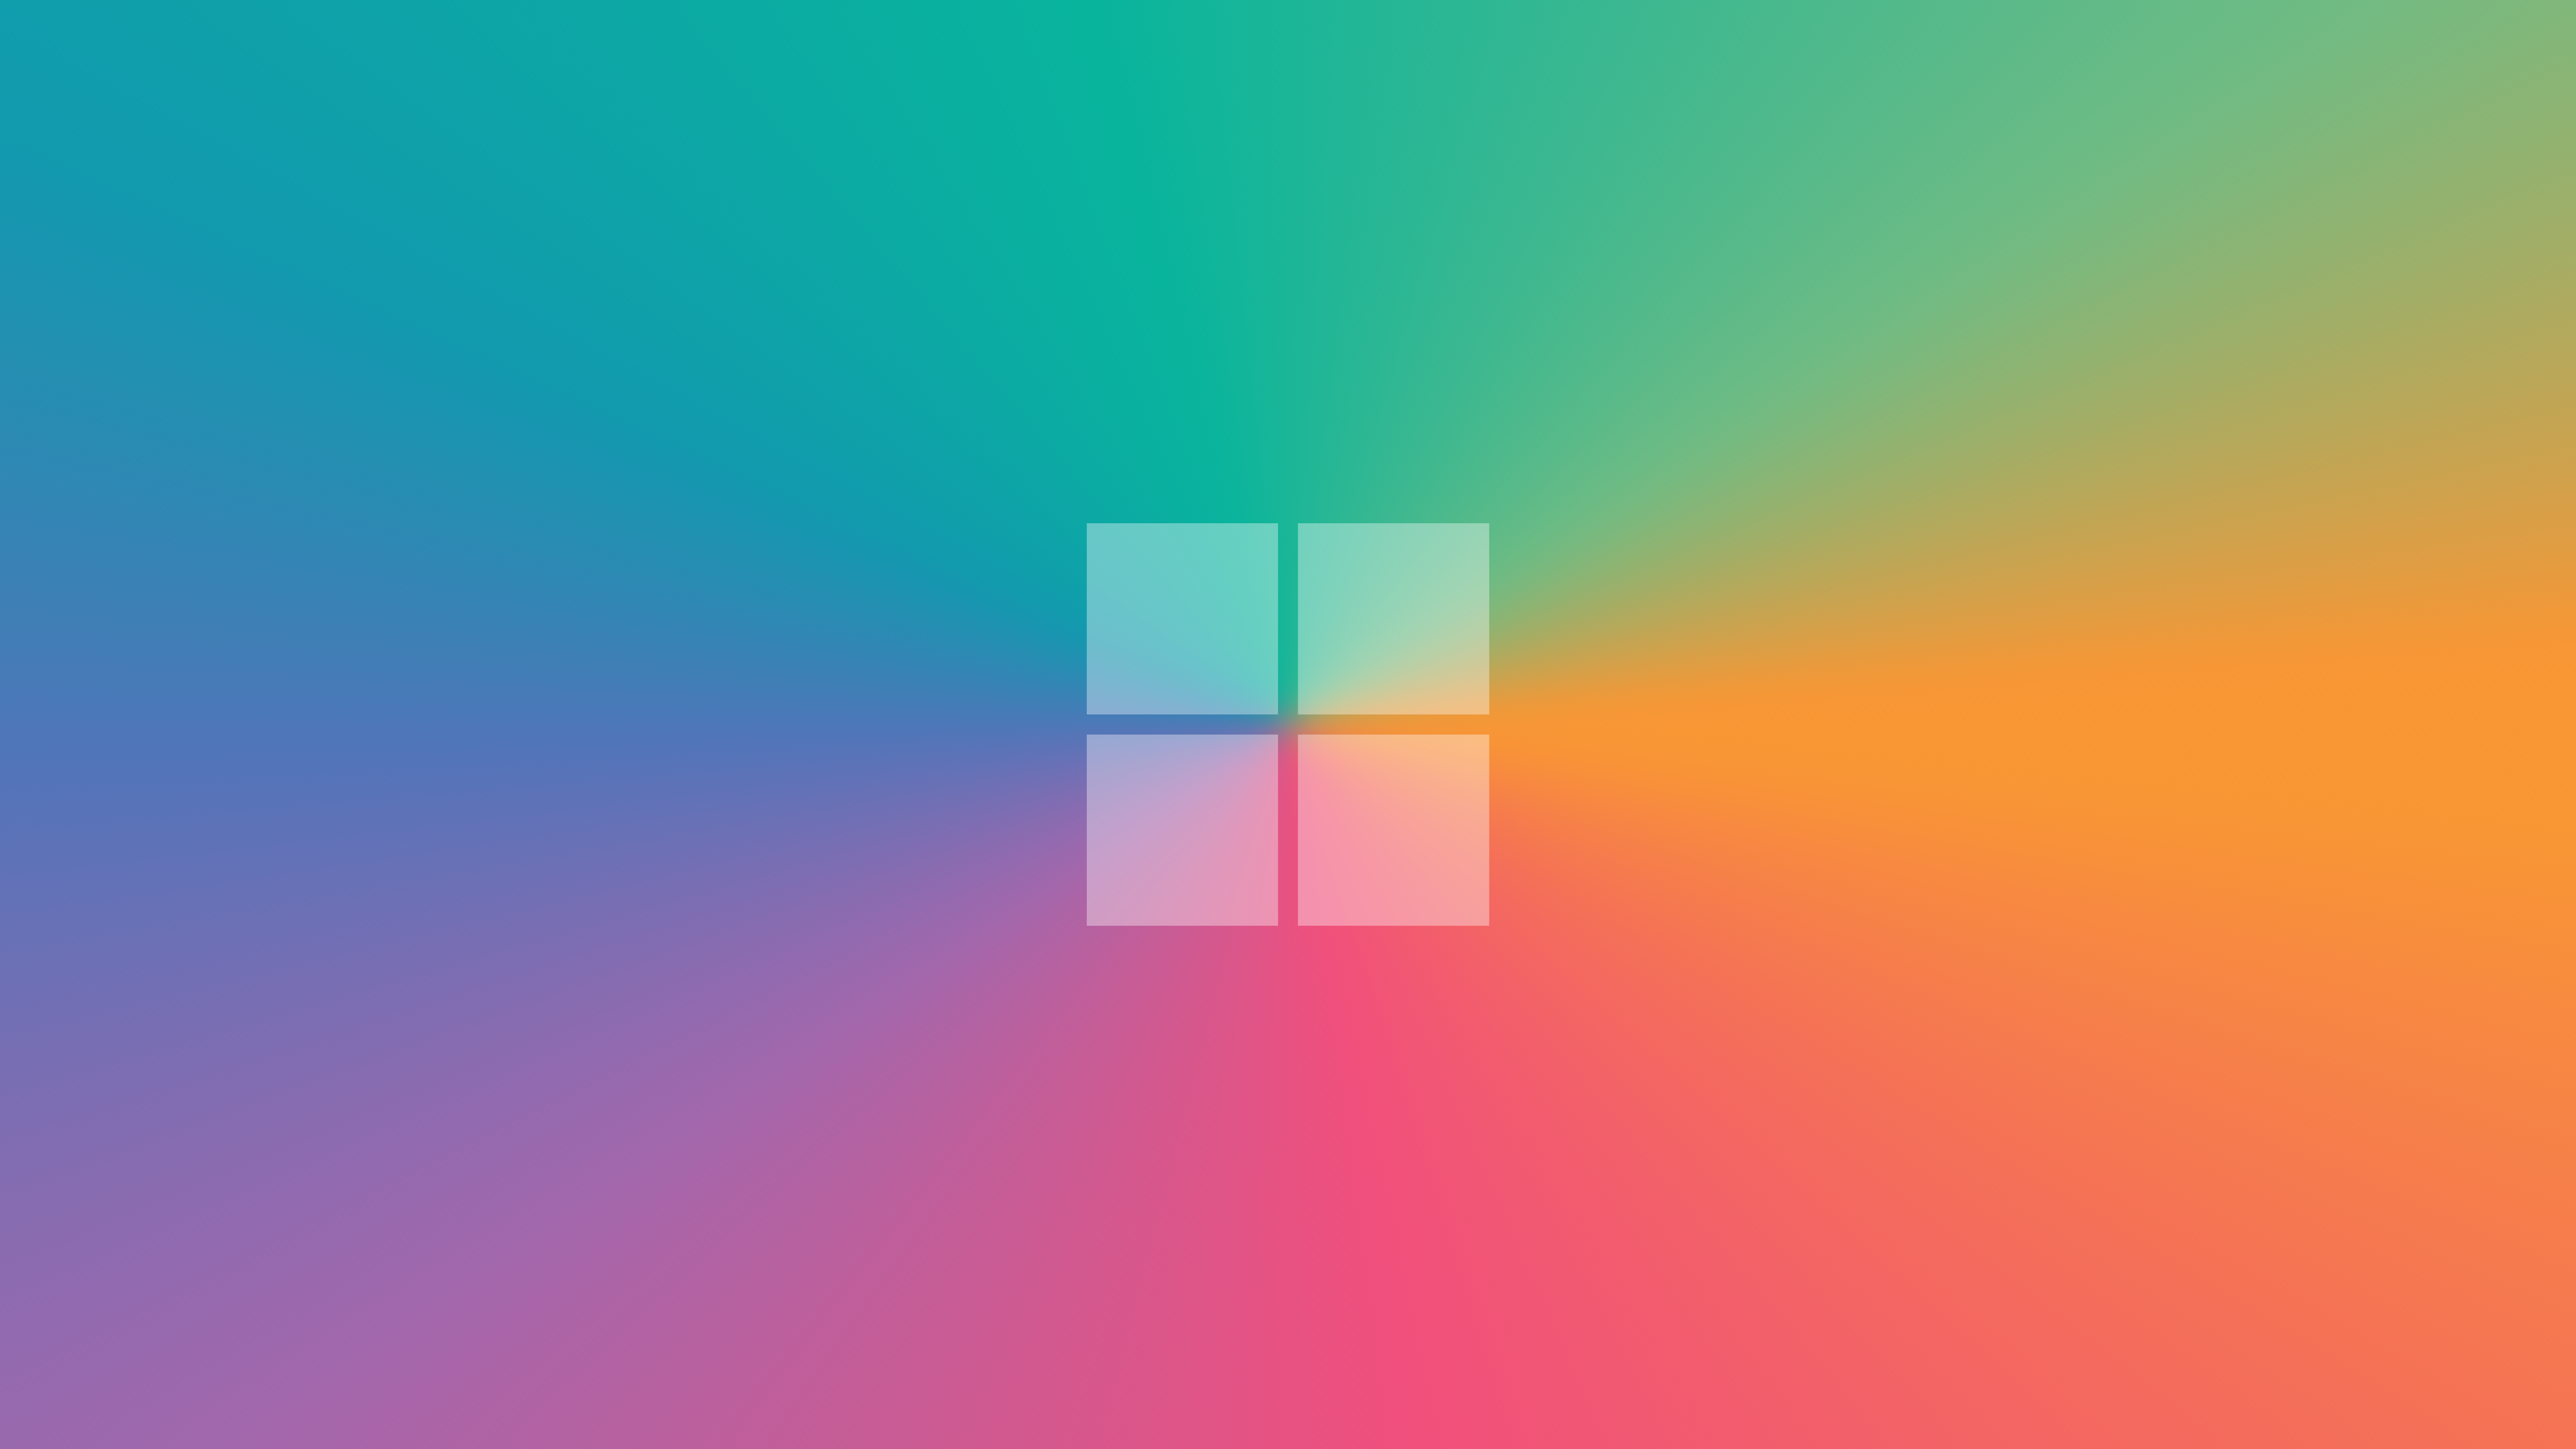 A clean colourful Windows 10 inspired wallpaper majn in 2019 3840x2160